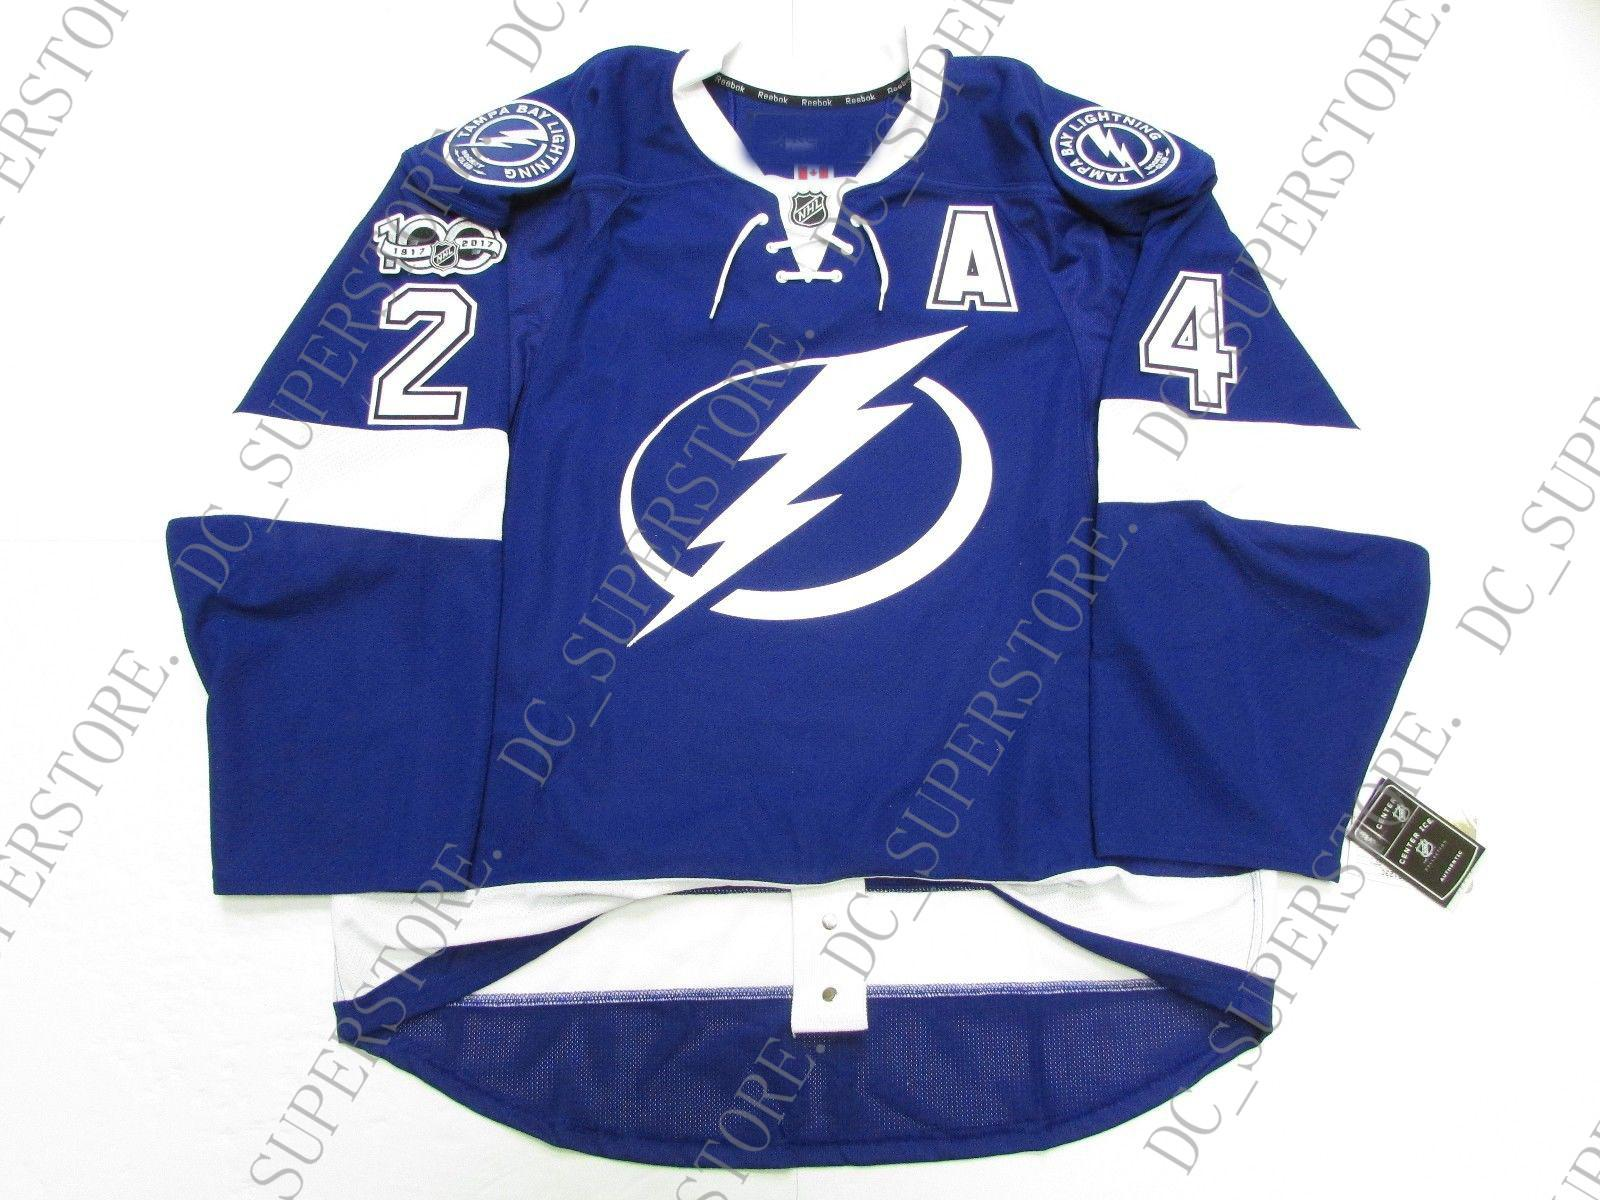 Cheap Custom CALLAHAN TAMPA BAY LIGHTNING HOME 100th ANNIVERSARY JERSEY  Stitch Add Any Number Any Name Mens Hockey Jersey XS 5XL UK 2019 From  Dc superstore 10de406b2